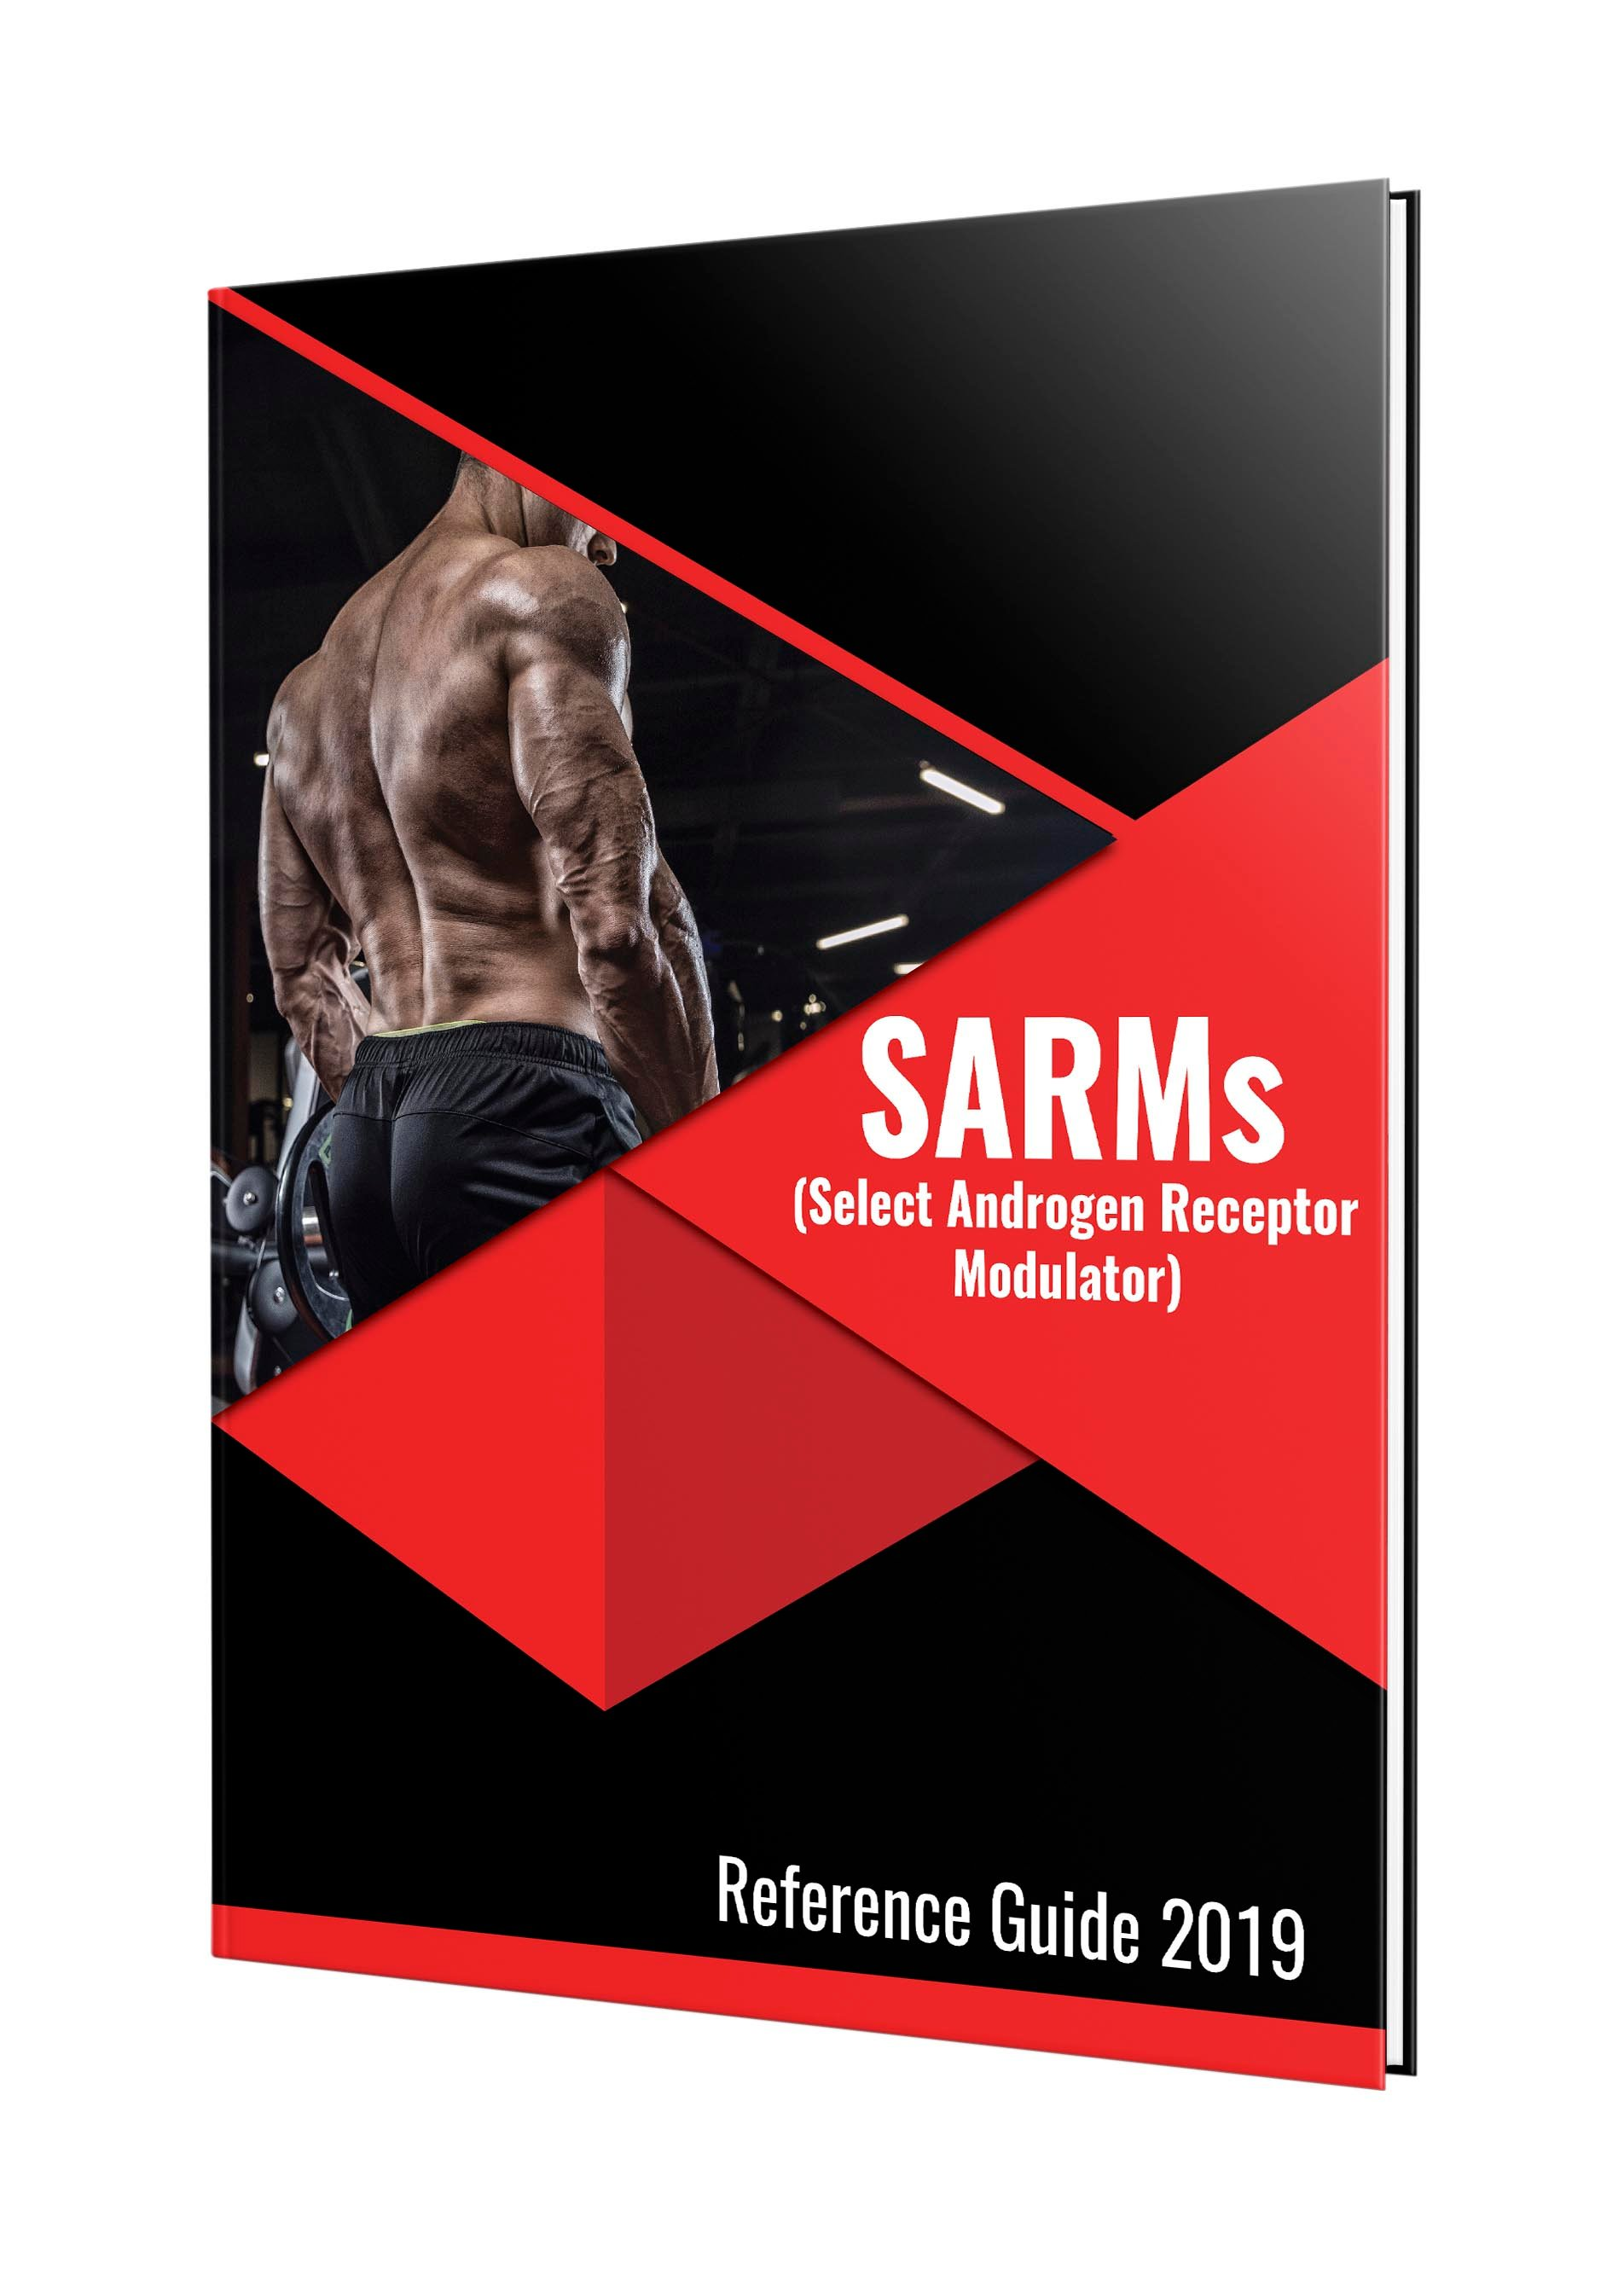 Real SARMS Reviews From Actual Users - 10 Testimonials